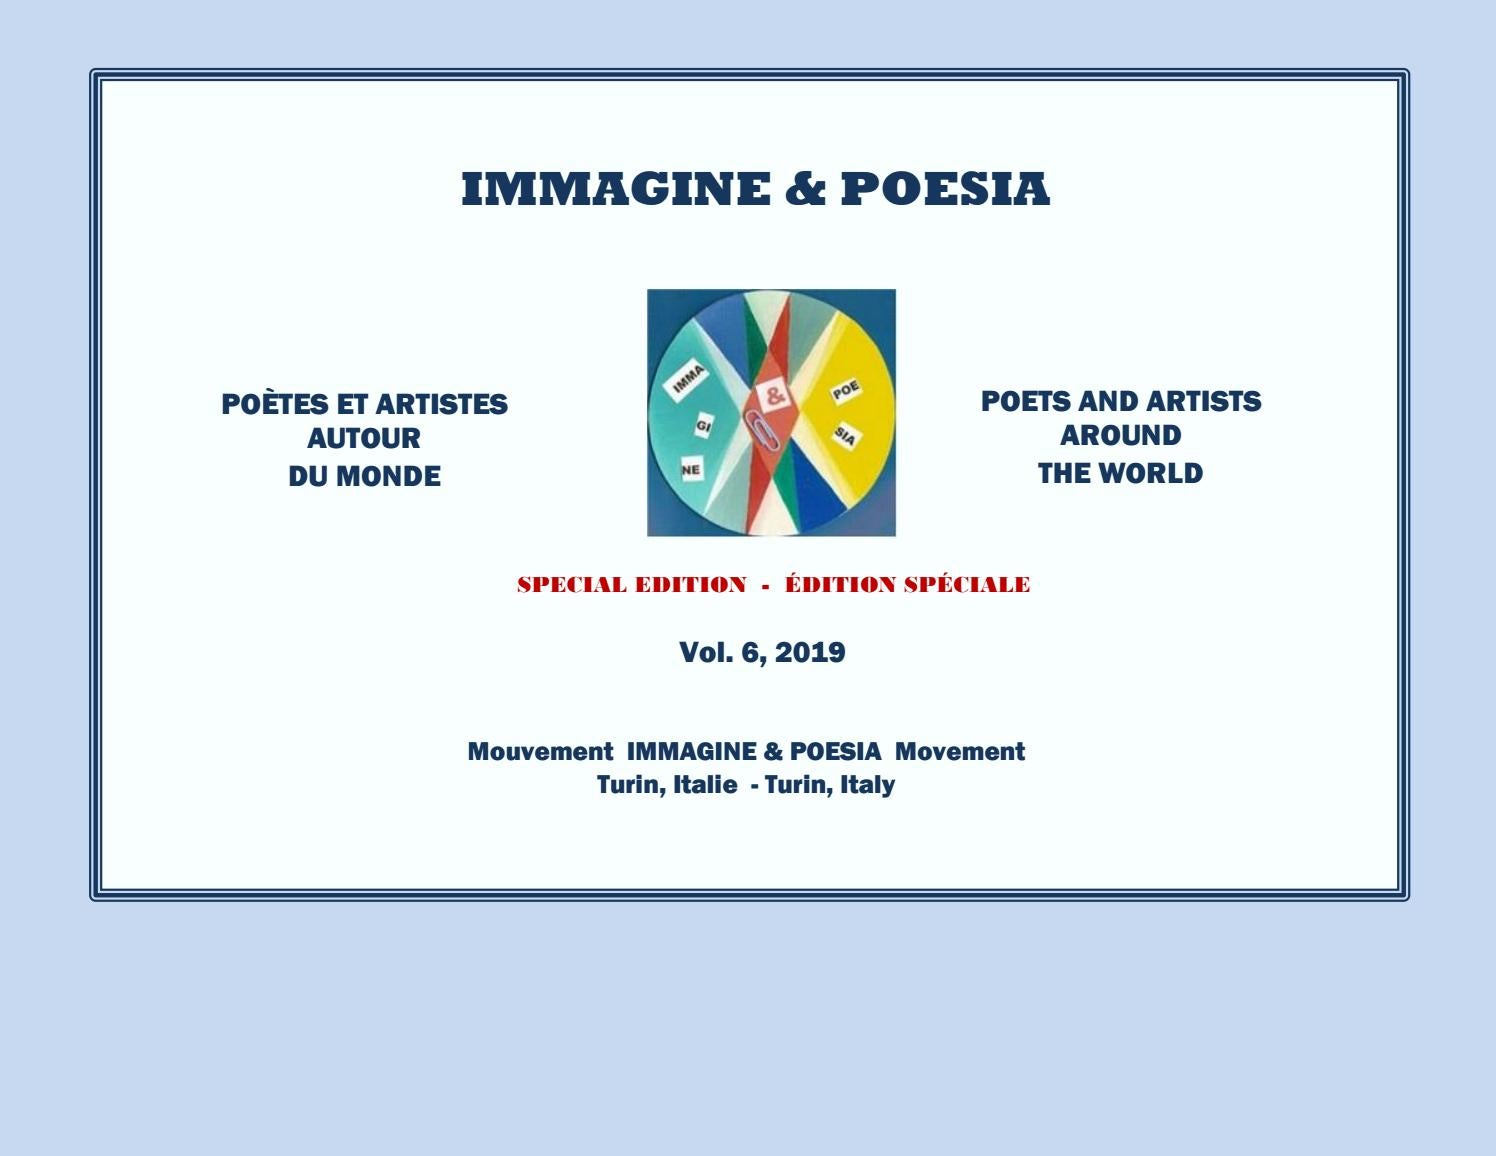 Immagine Poesia 2019 Volume 6 Special Edition By Immagine